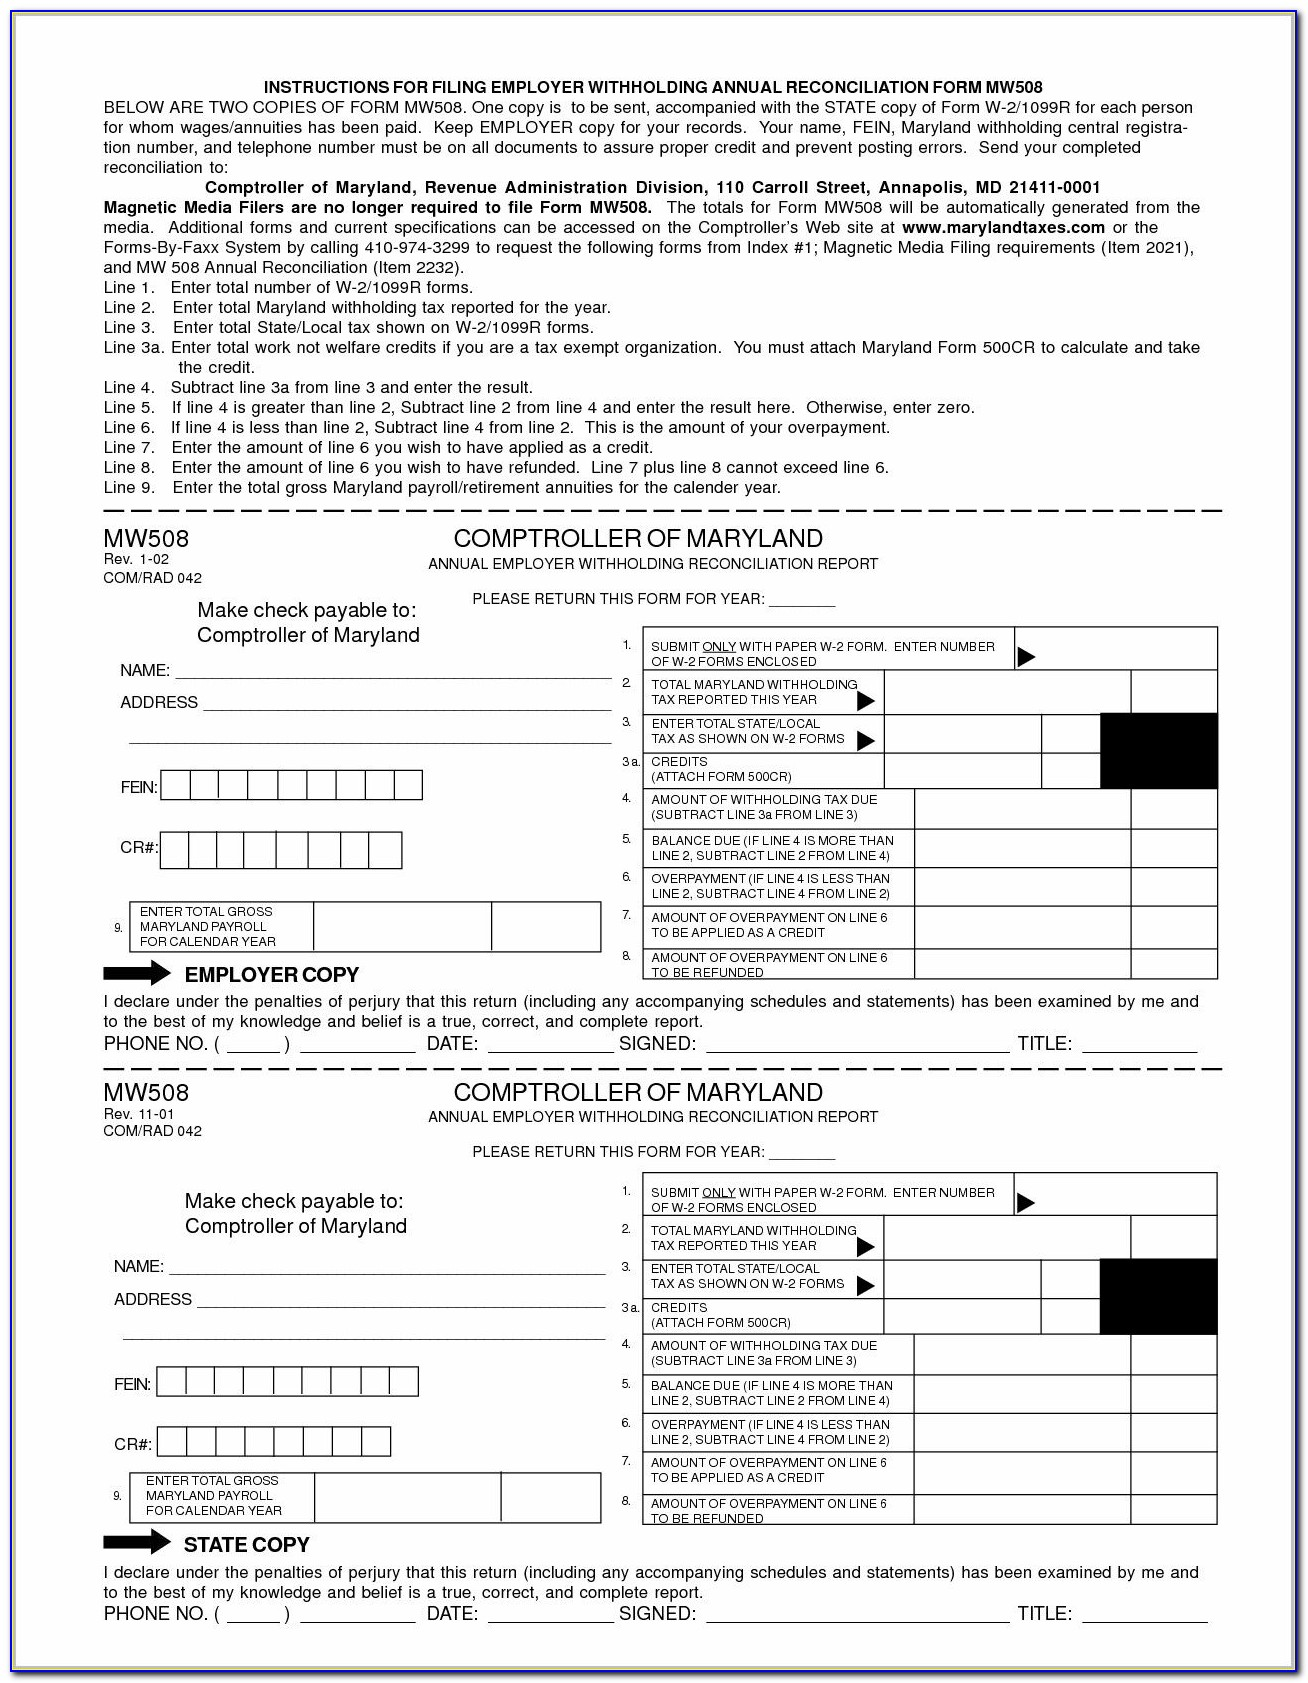 Printable W2 Form For Employers Form : Resume Examples #qnpbommzwm Intended For Printable W2 Form